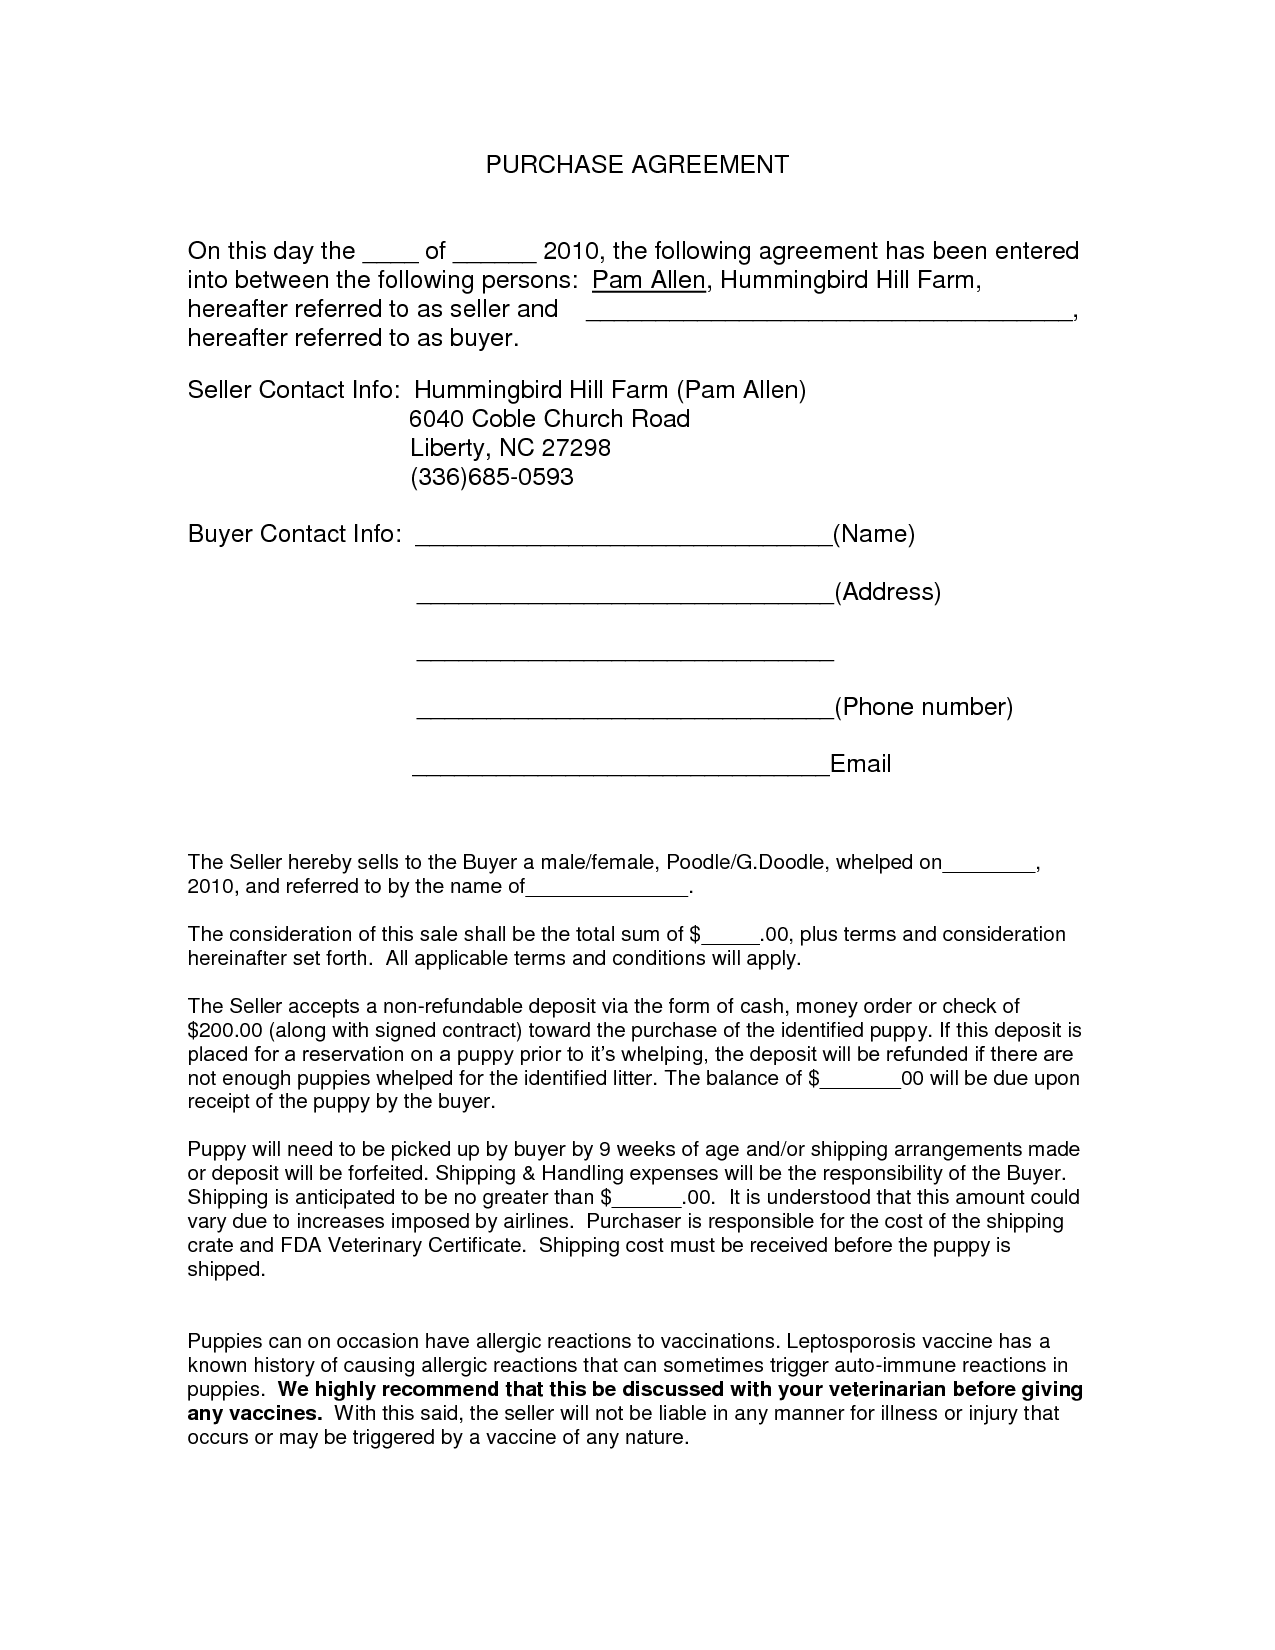 Auto Purchase Agreement Form DOC by nyy13910 purchase contract – Printable Purchase Agreement